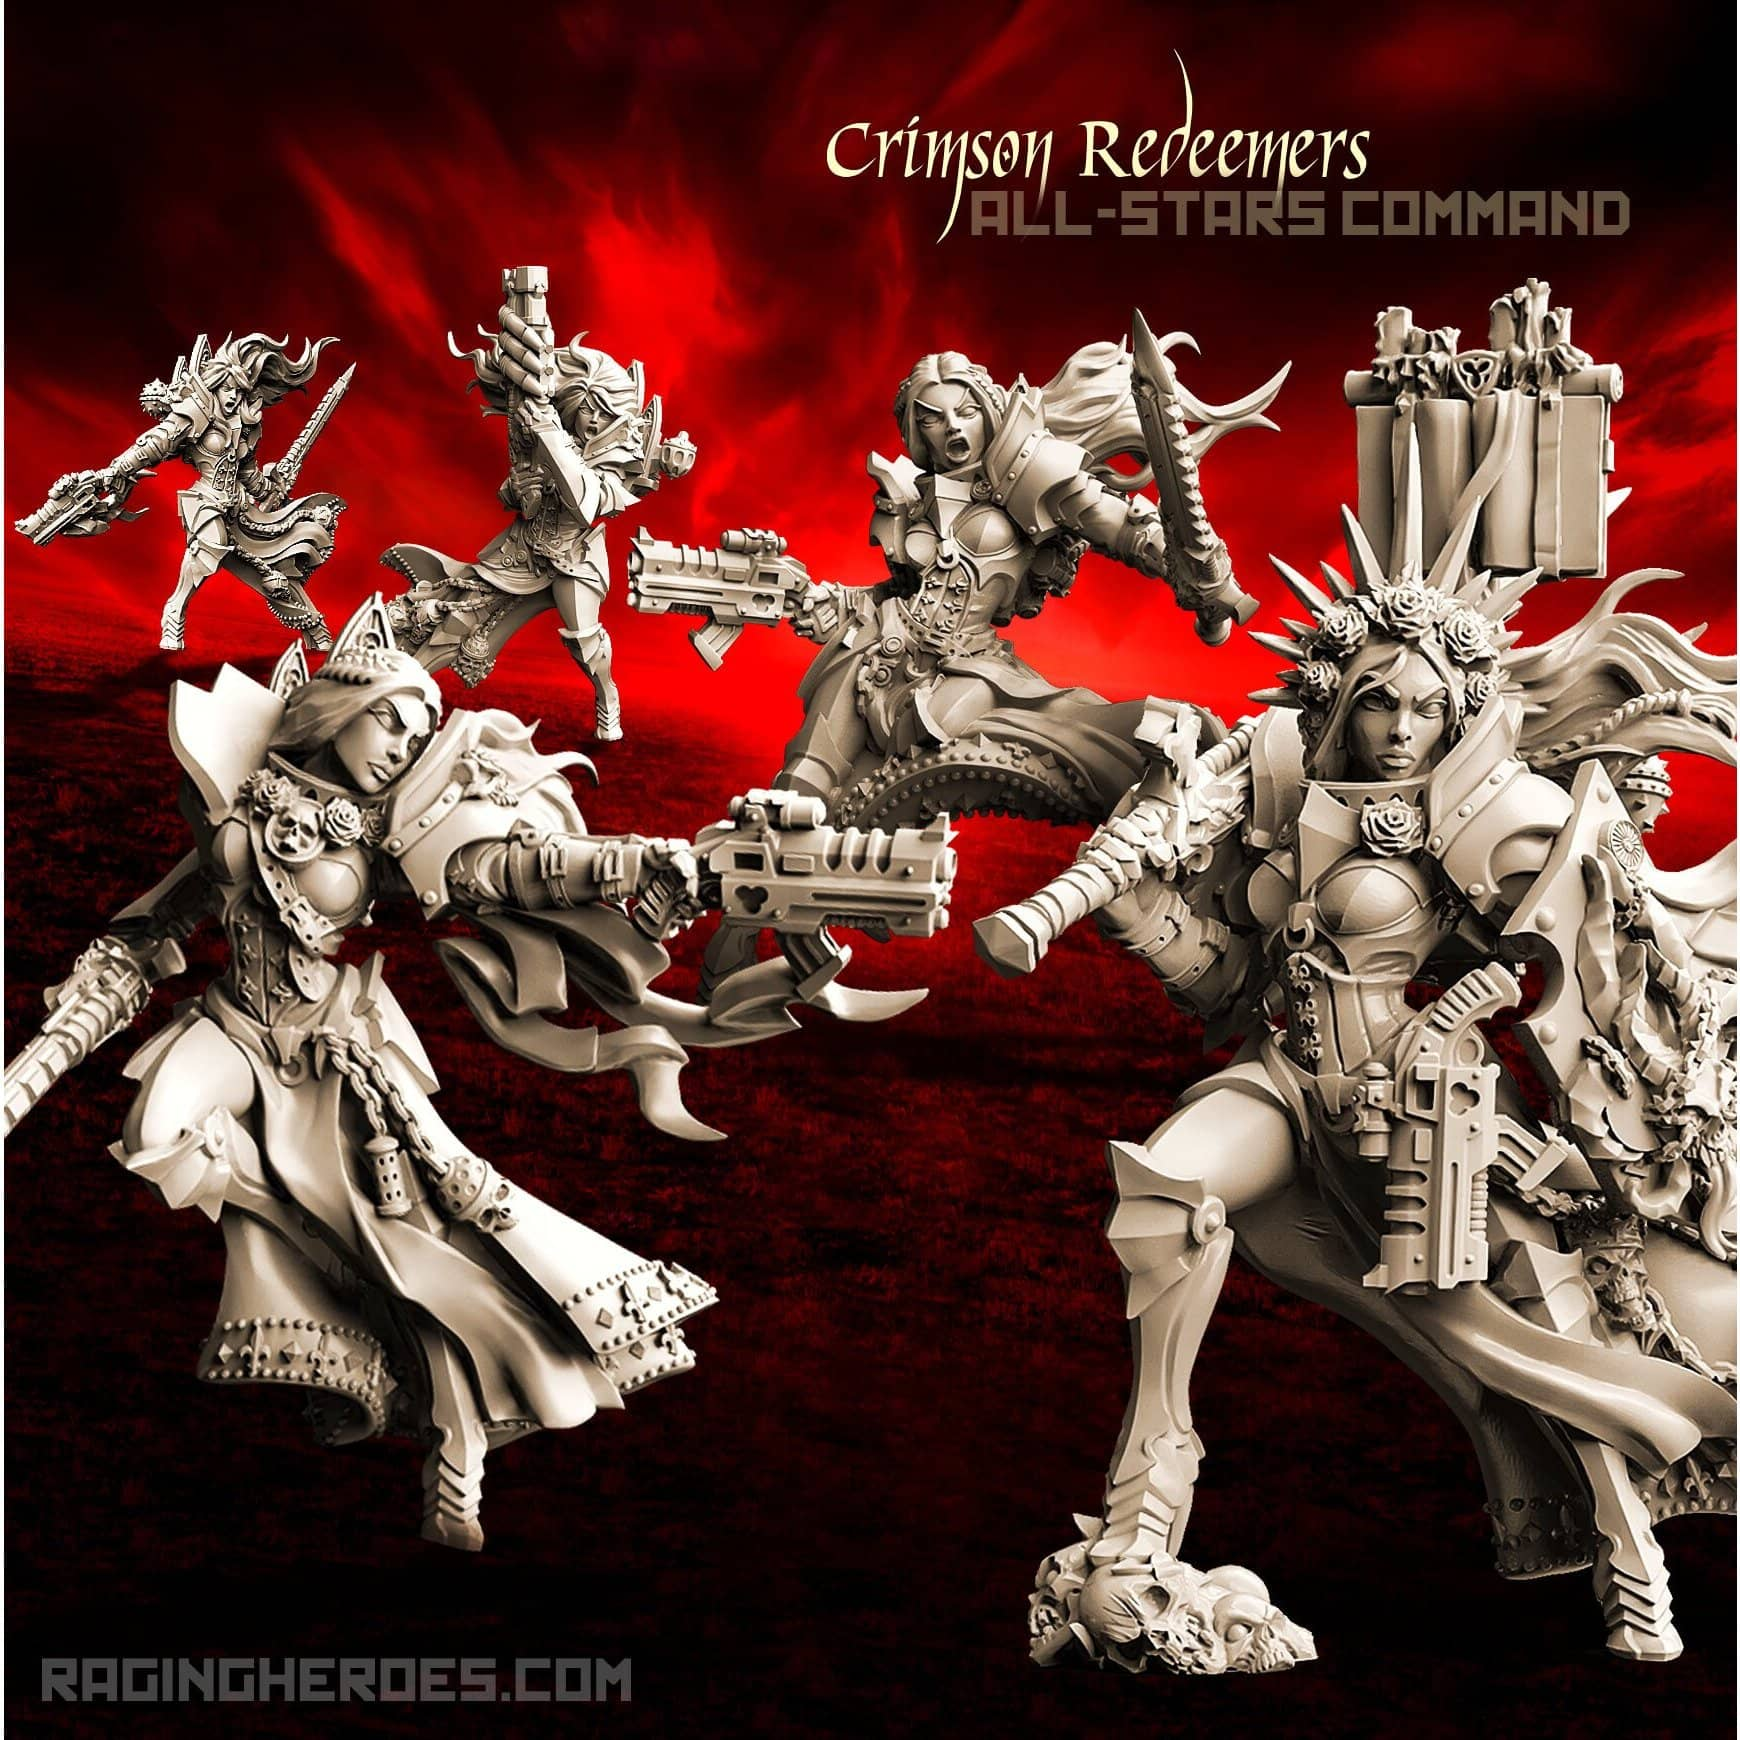 Crimson Redeemers All-Stars – COMMAND (SOEM – SF) - Raging Heroes